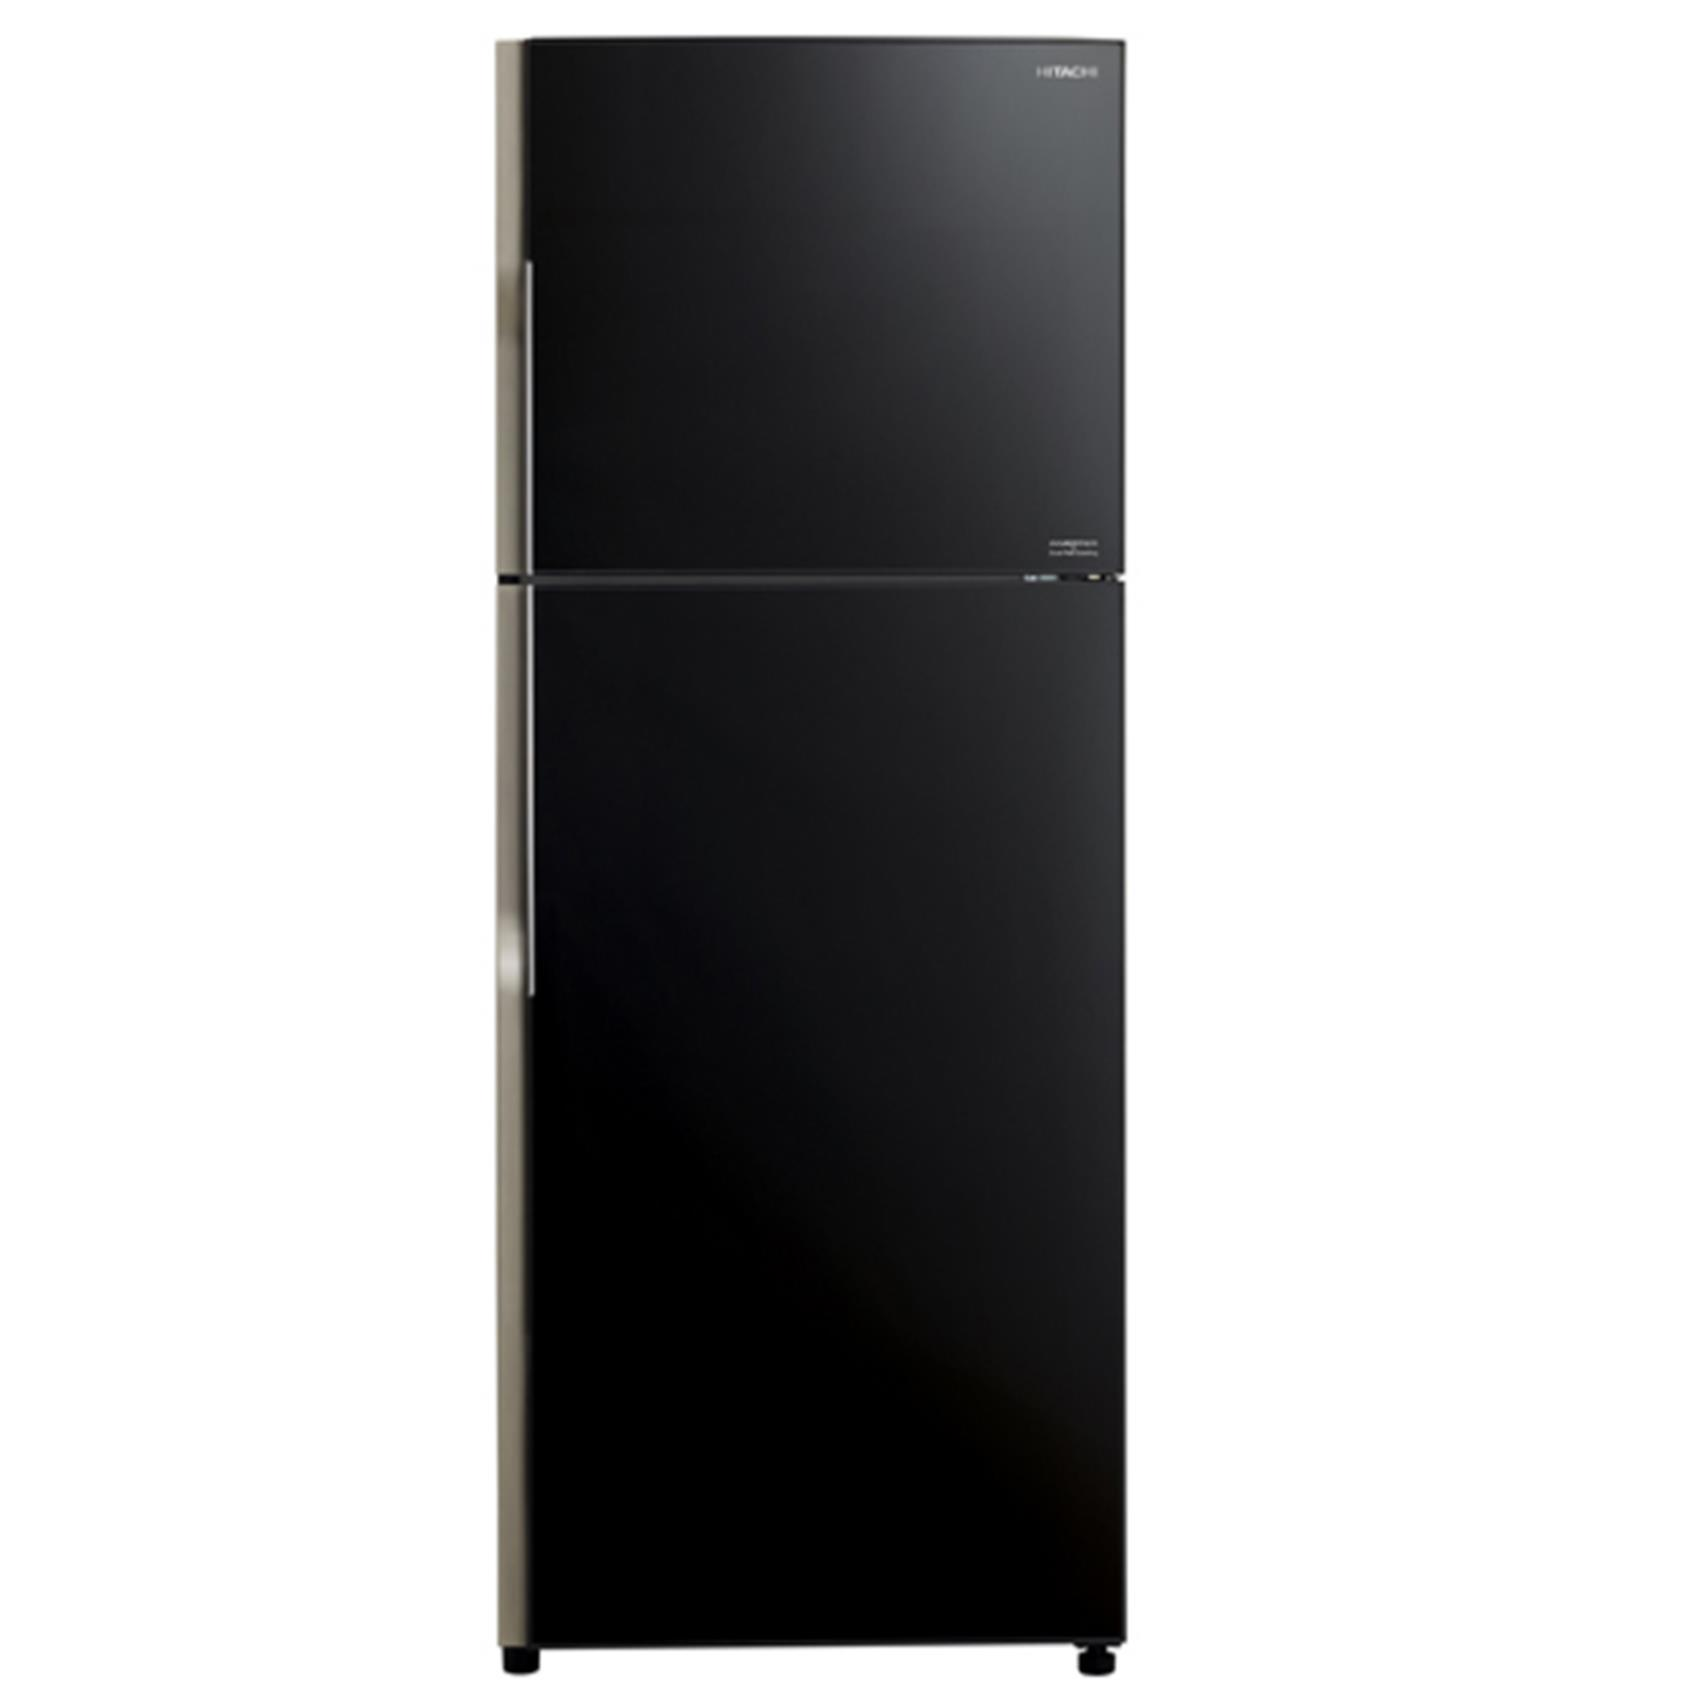 HITACHI FRIDGE RVG470PUK3K 470L